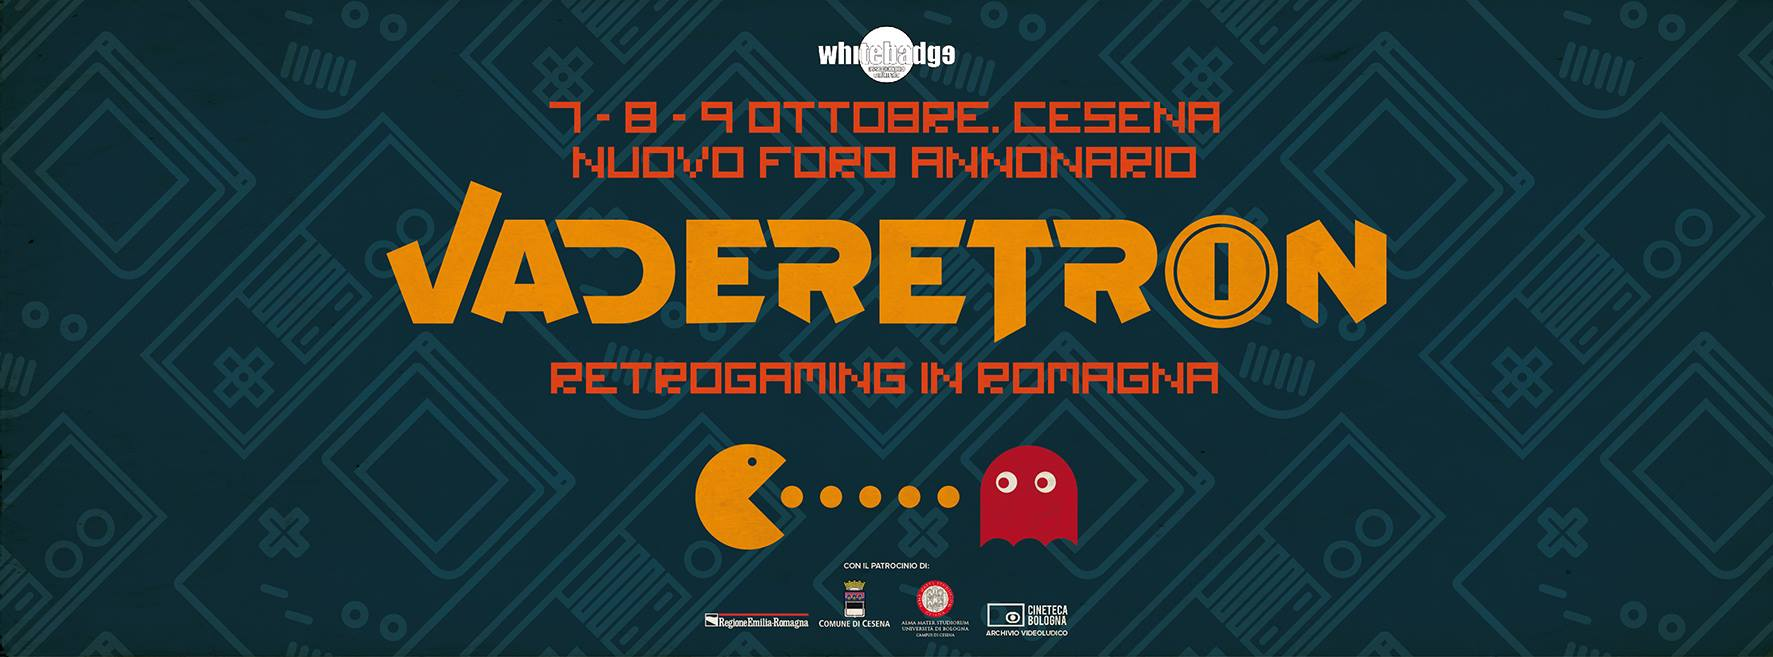 Vaderetron: Retrogaming in Romagna, apre il crowdfunding dell'evento